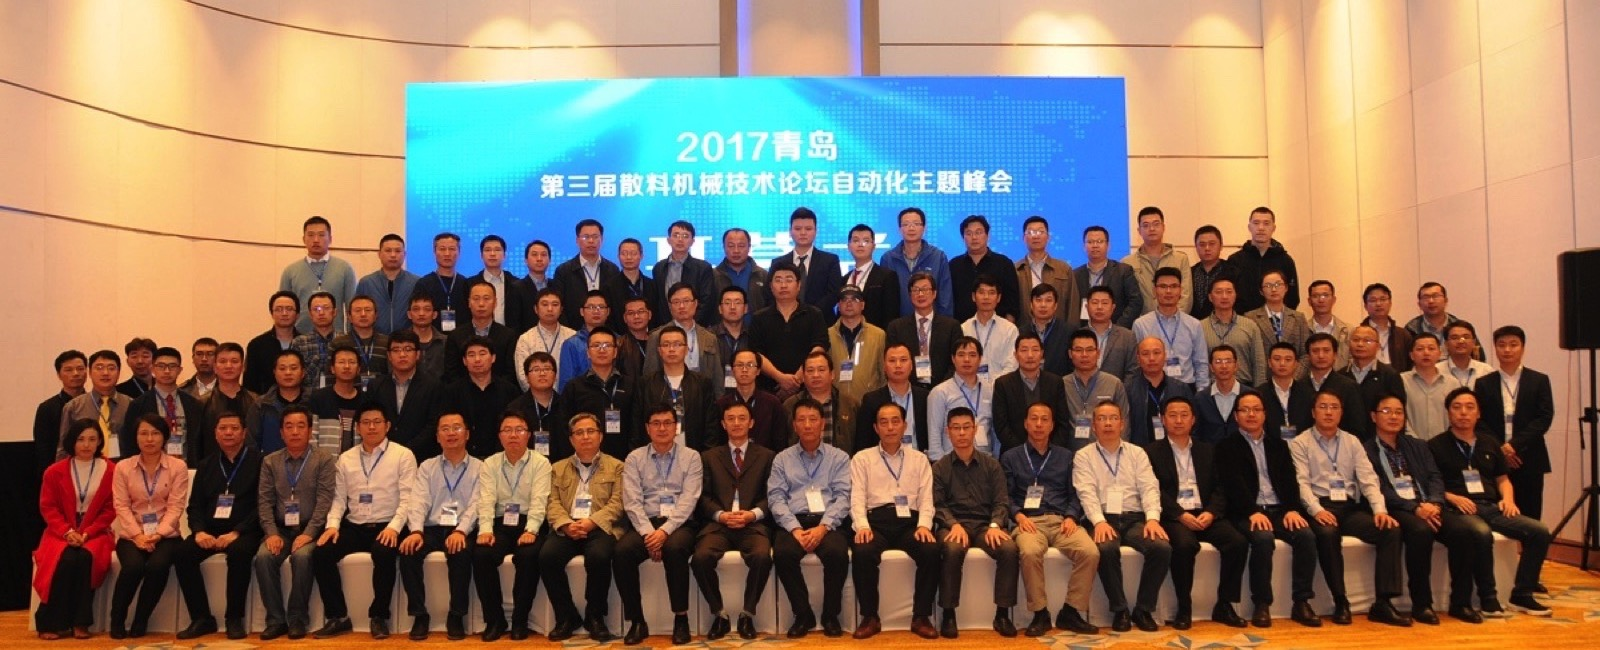 SECC: The 3rd Technology Forum for BMHE 2017 Qingdao